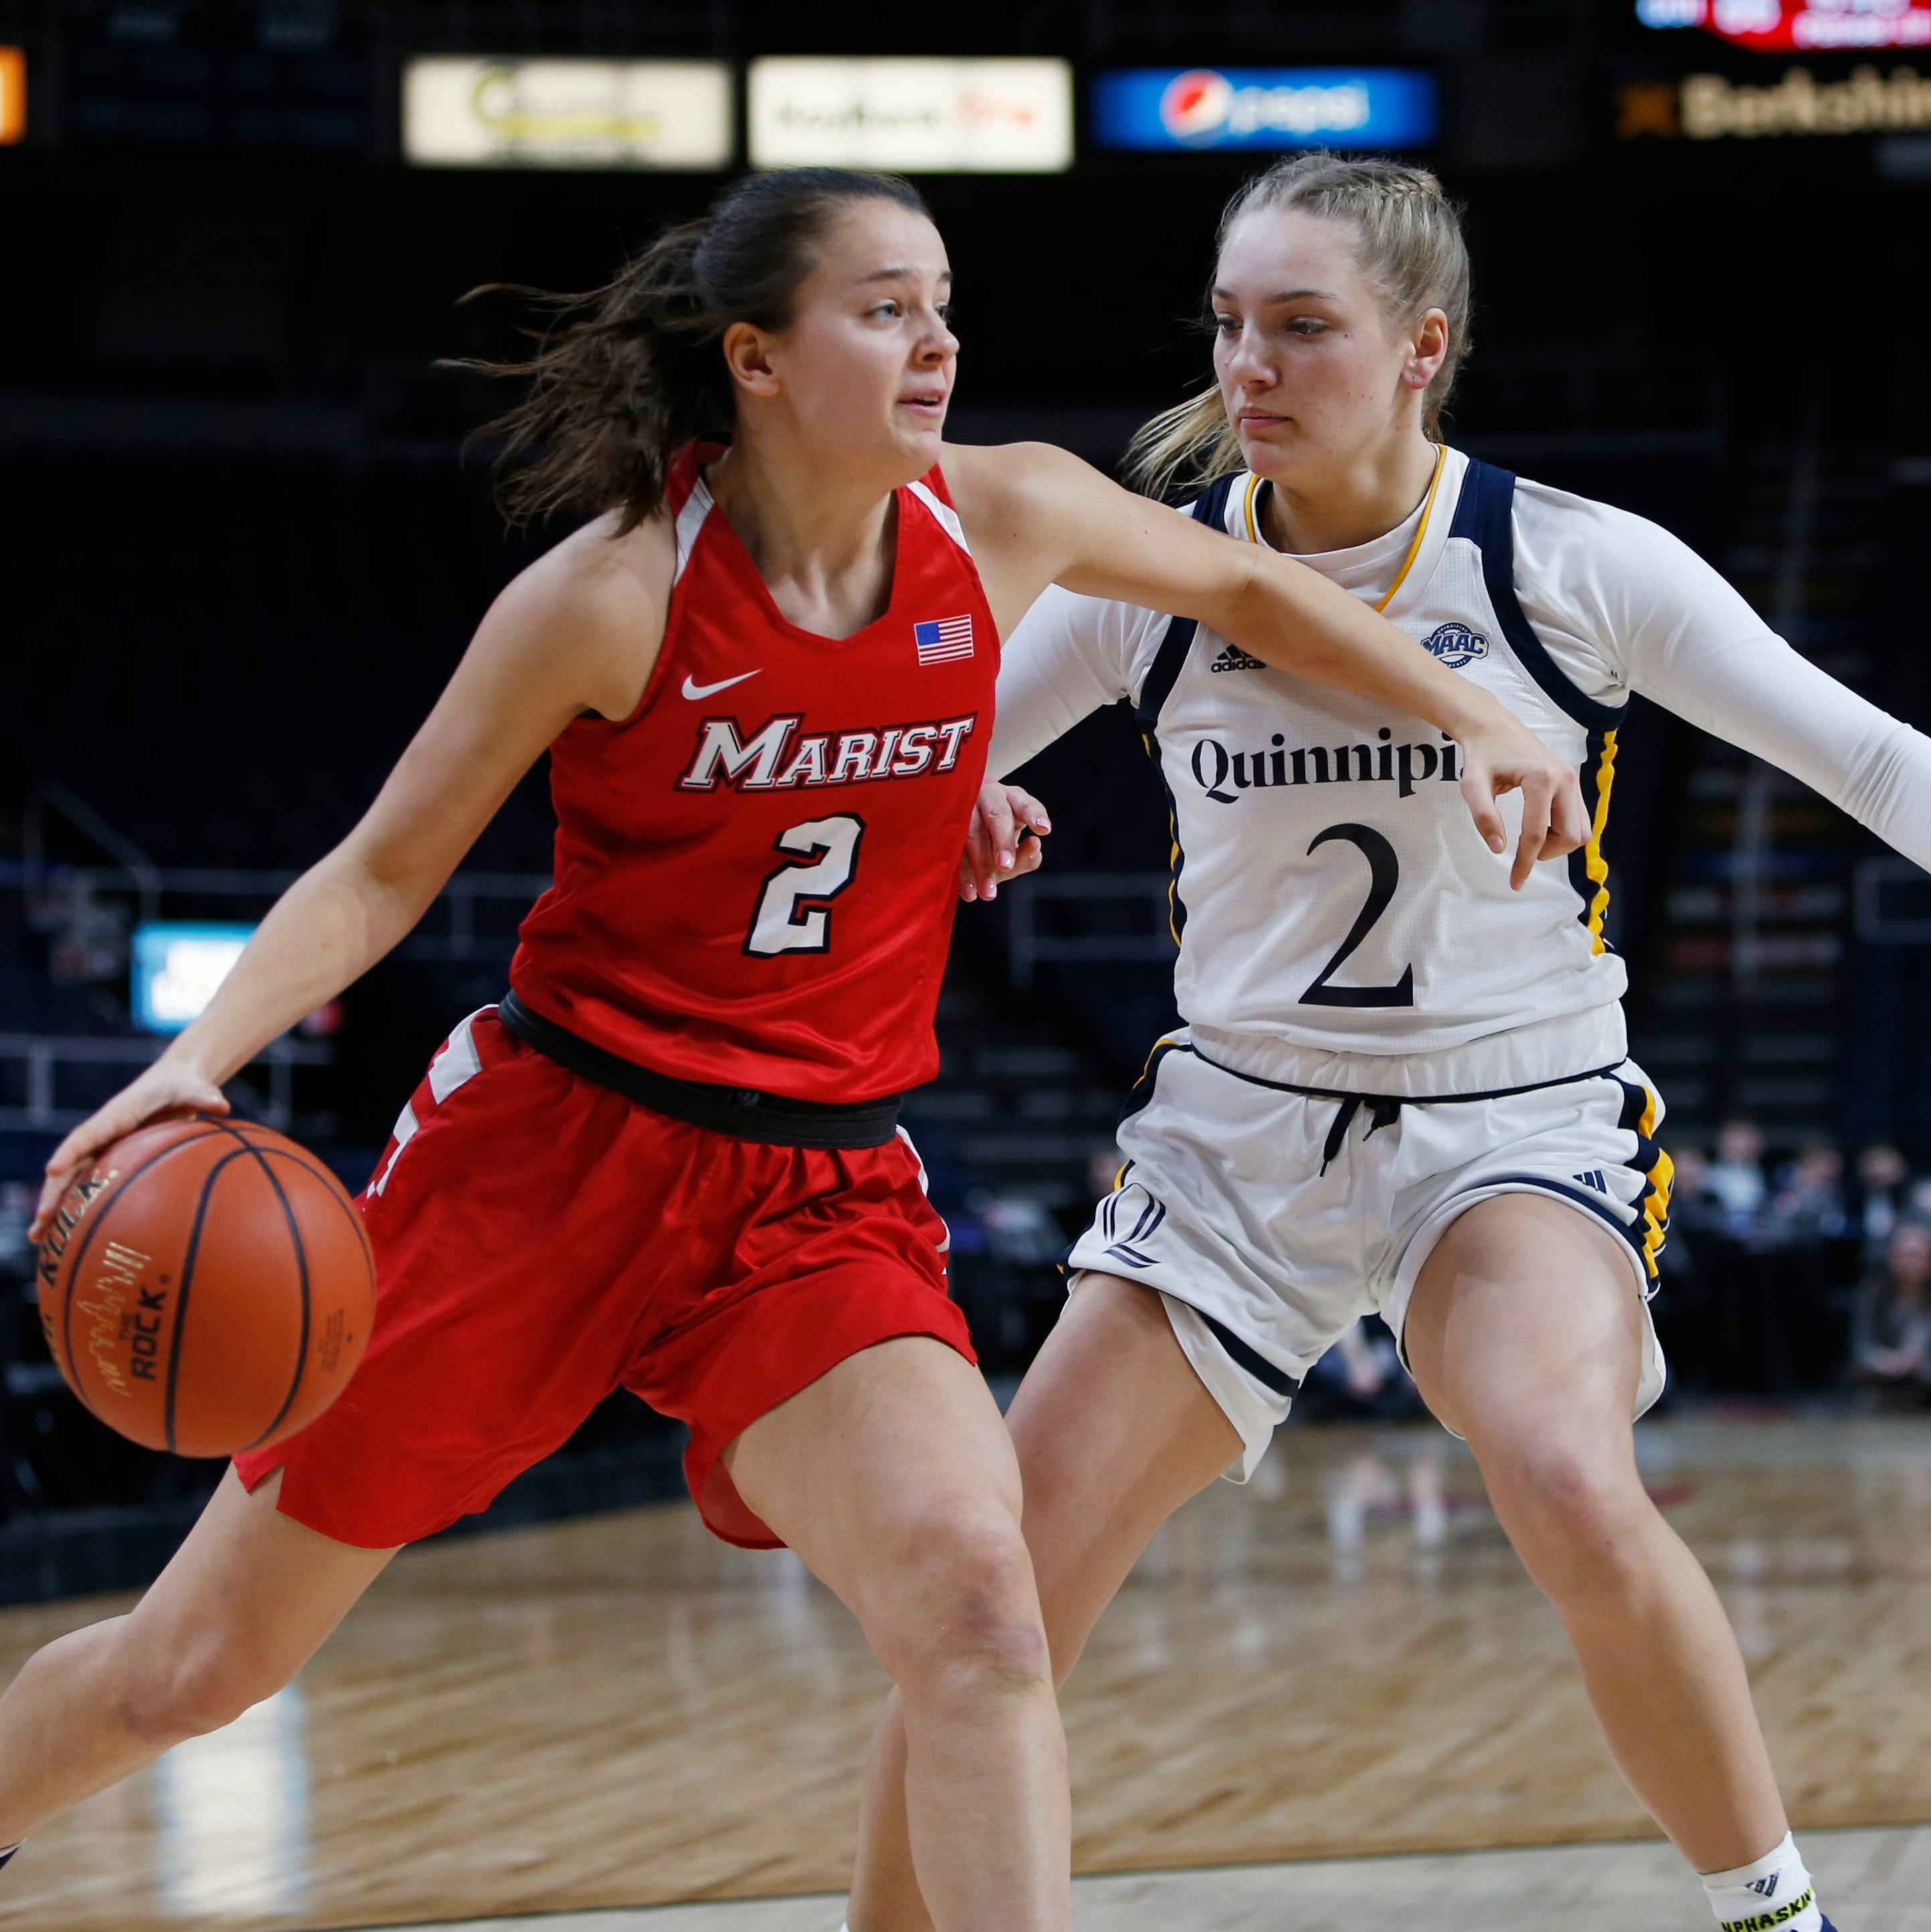 Marist misses out on postseason; season ends